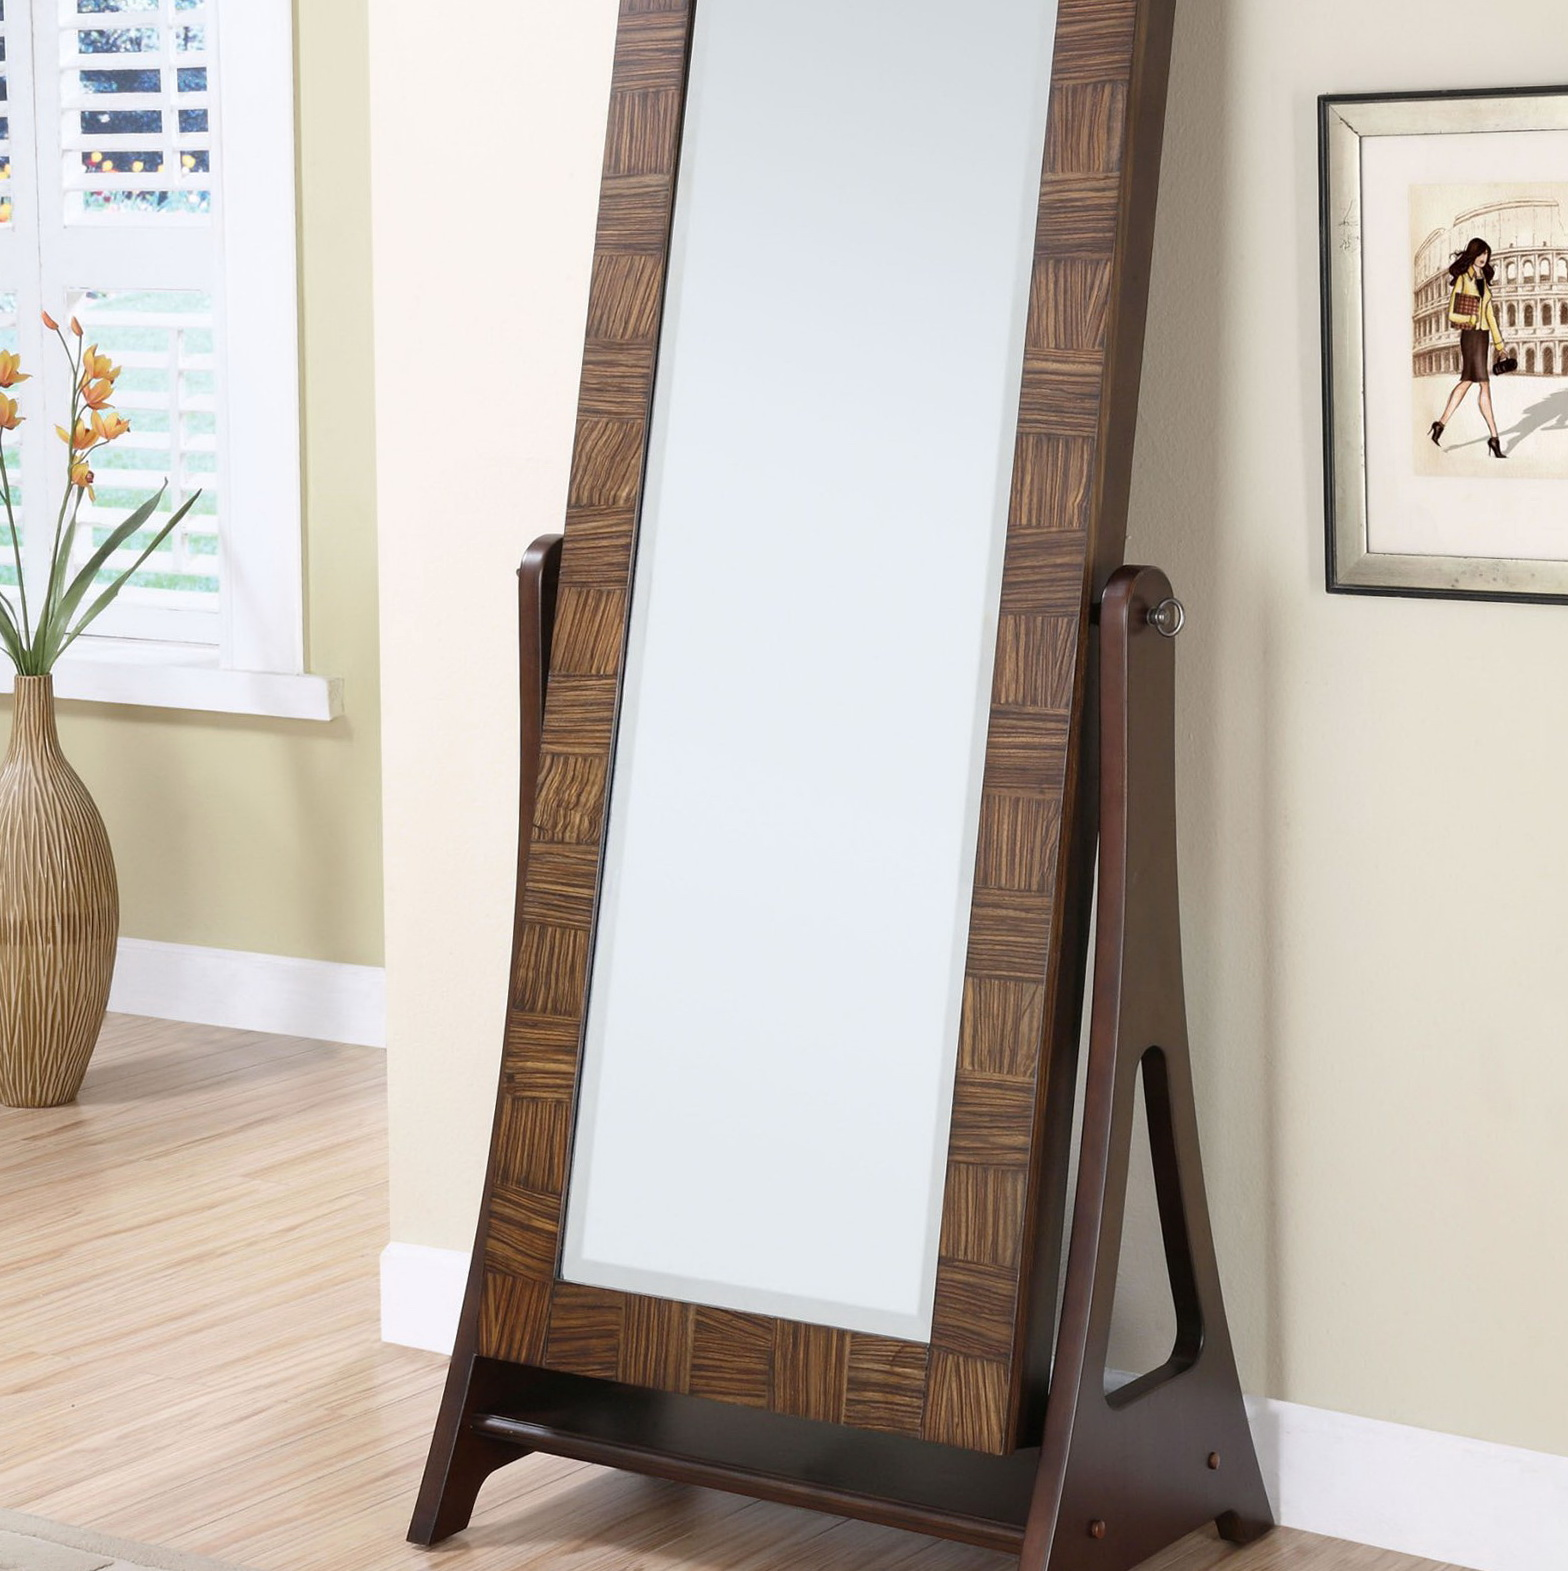 chic wooden standing mirror jewelry armoire in chestnut brown on wooden floor before the white wall for living room decor ideas